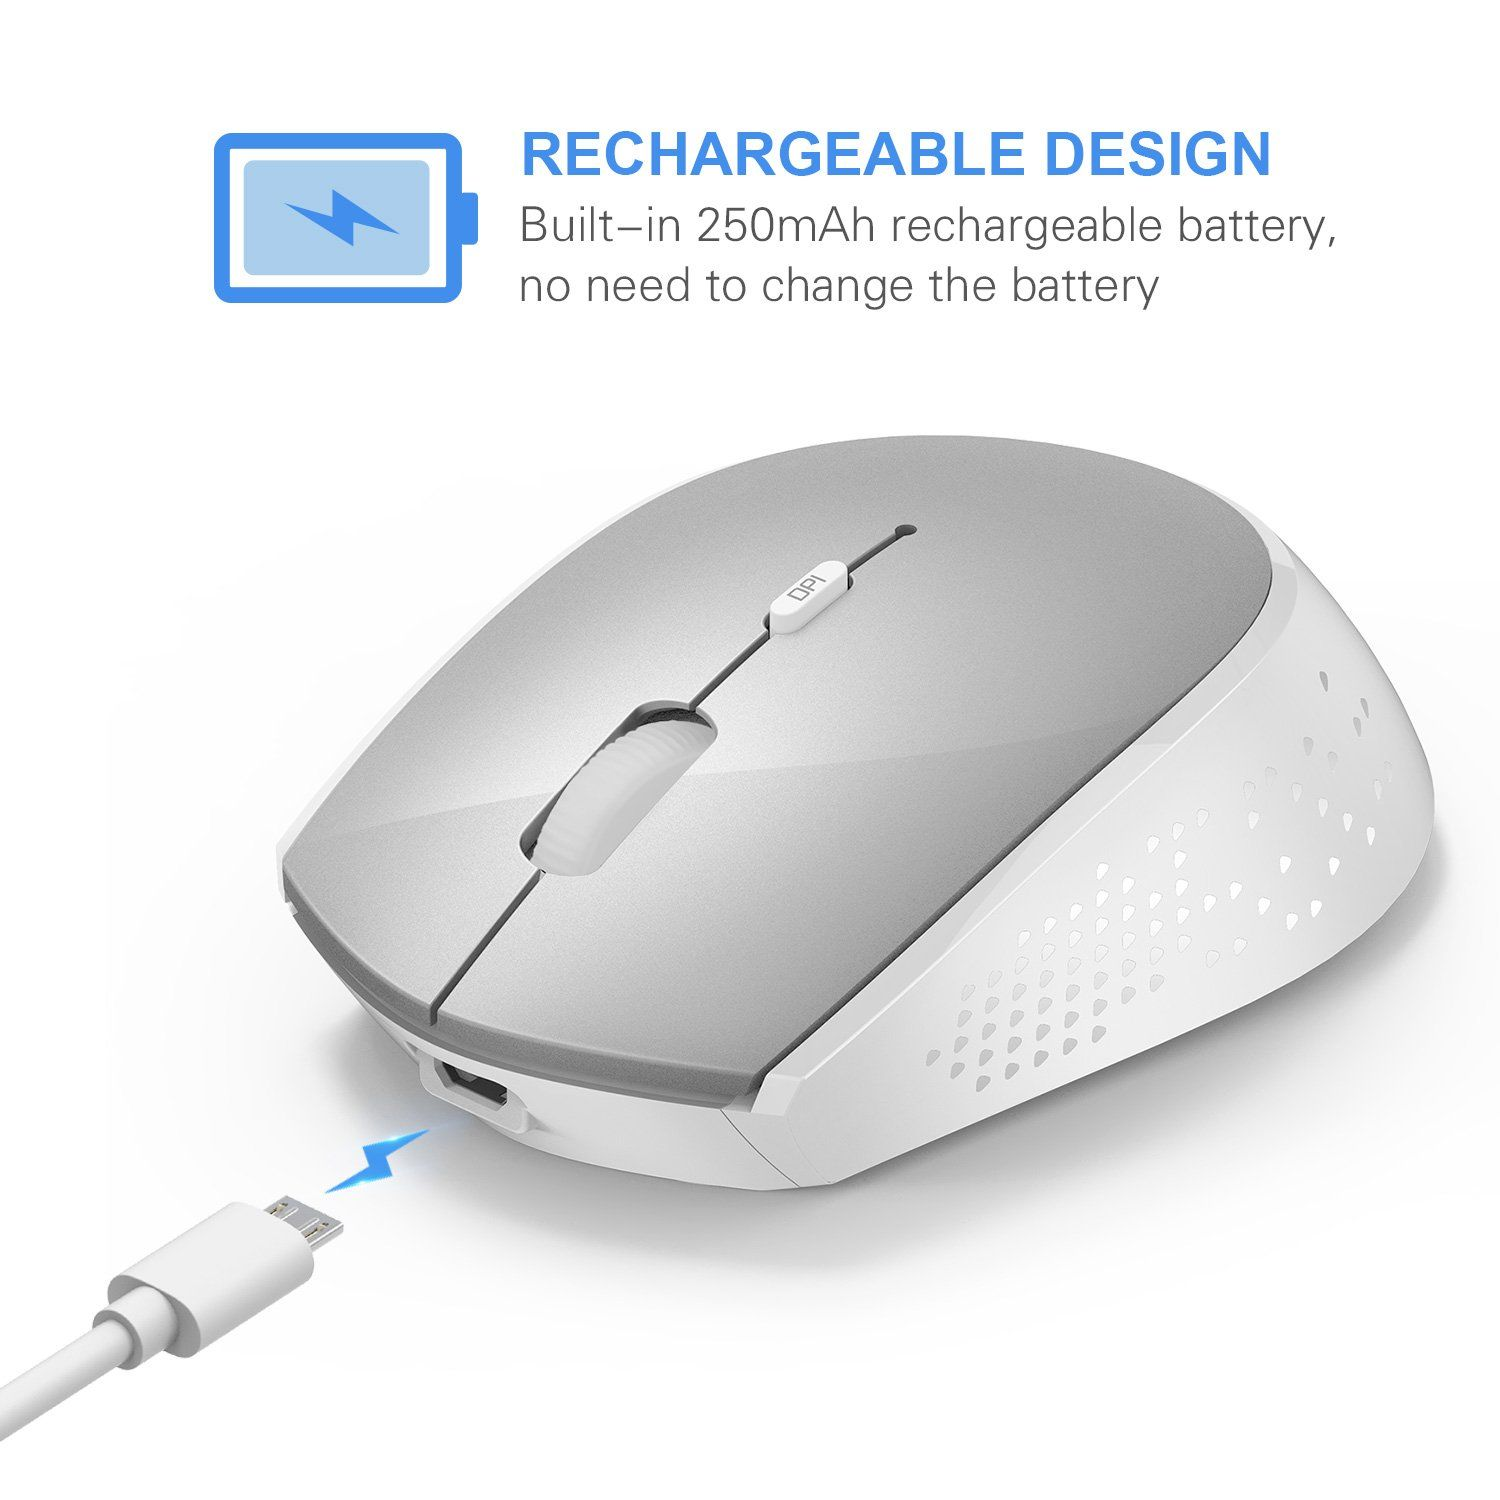 29a0db629d5 Type C Wireless Mouse, Jelly Comb 2.4GHz Rechargeable USB C Wireless Mouse  Compatible for MacBook 12